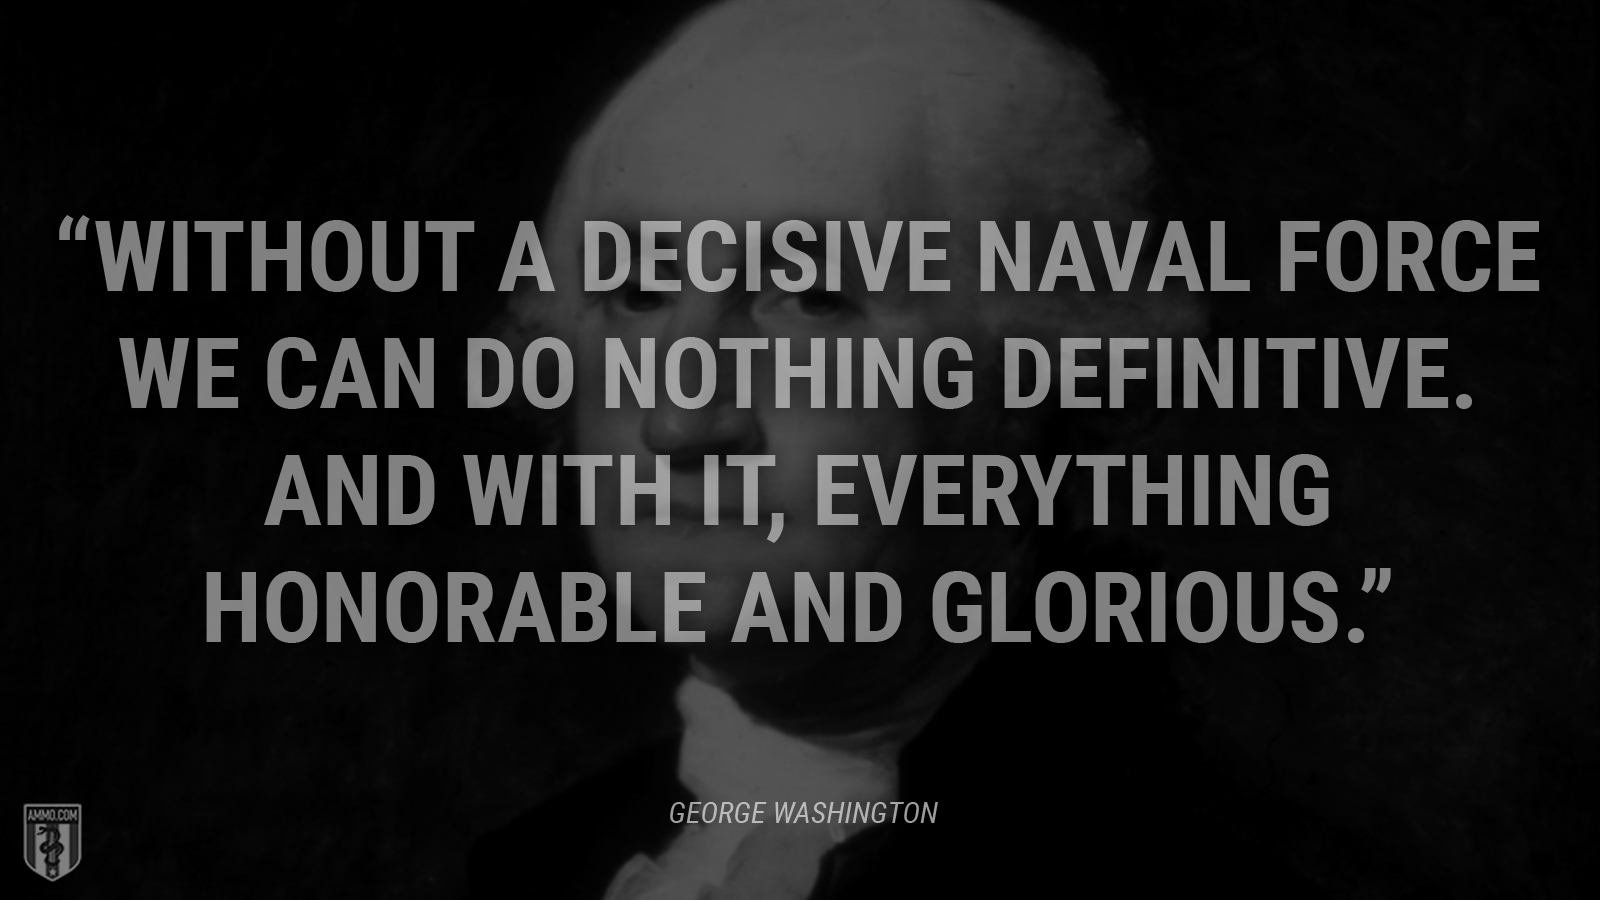 """Without a decisive naval force we can do nothing definitive. And with it, everything honorable and glorious."" - George Washington"